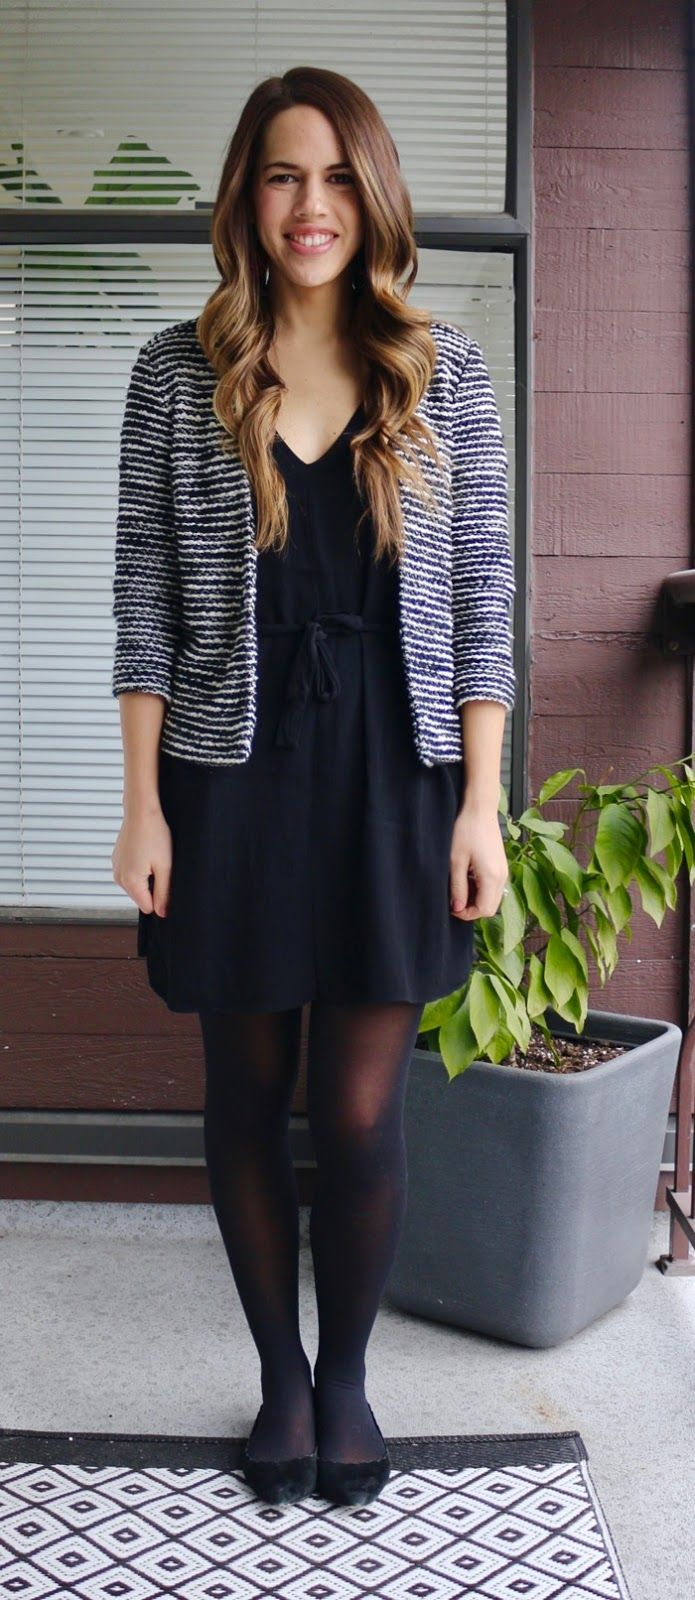 Jules in Flats – Black Tie-Waist Dress with Striped Jacket for Work